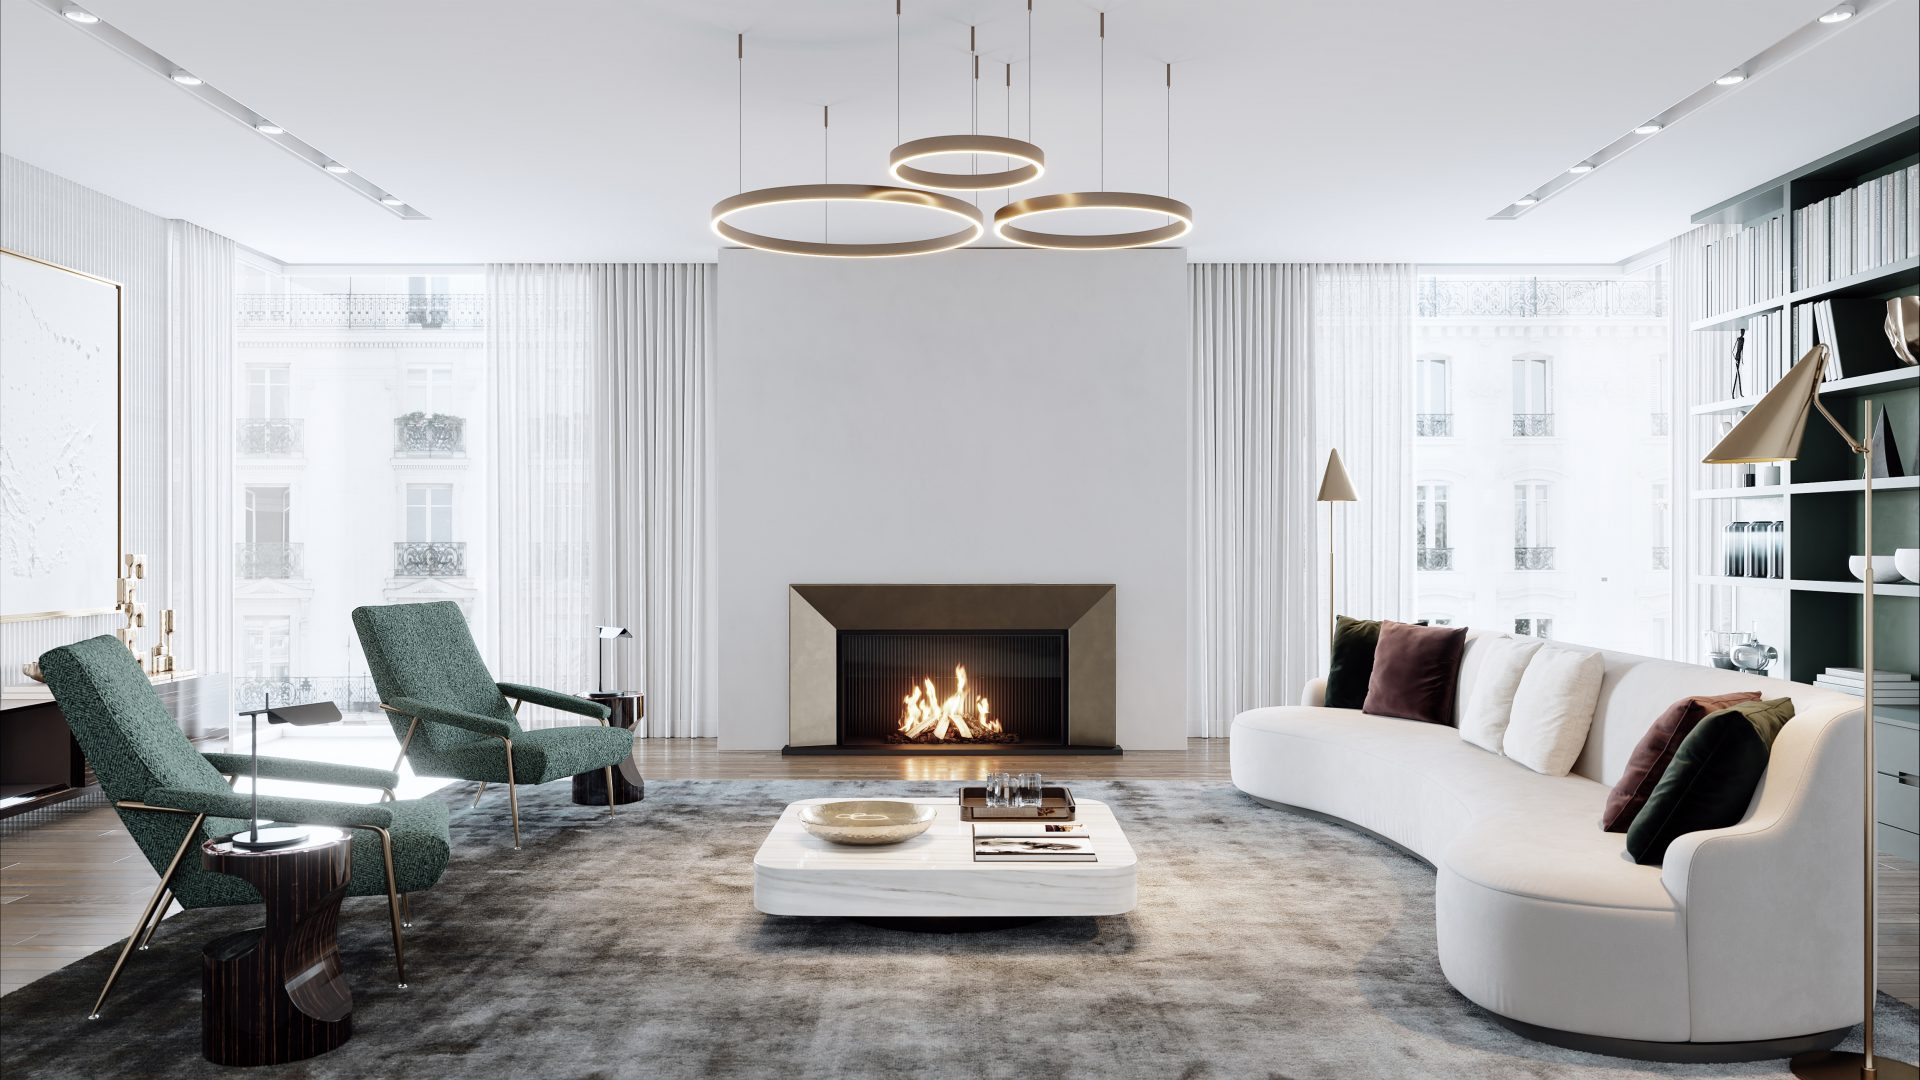 Modus Fireplaces - Modern Gas Fires - 844 Bronze Bespoke Gas Fire